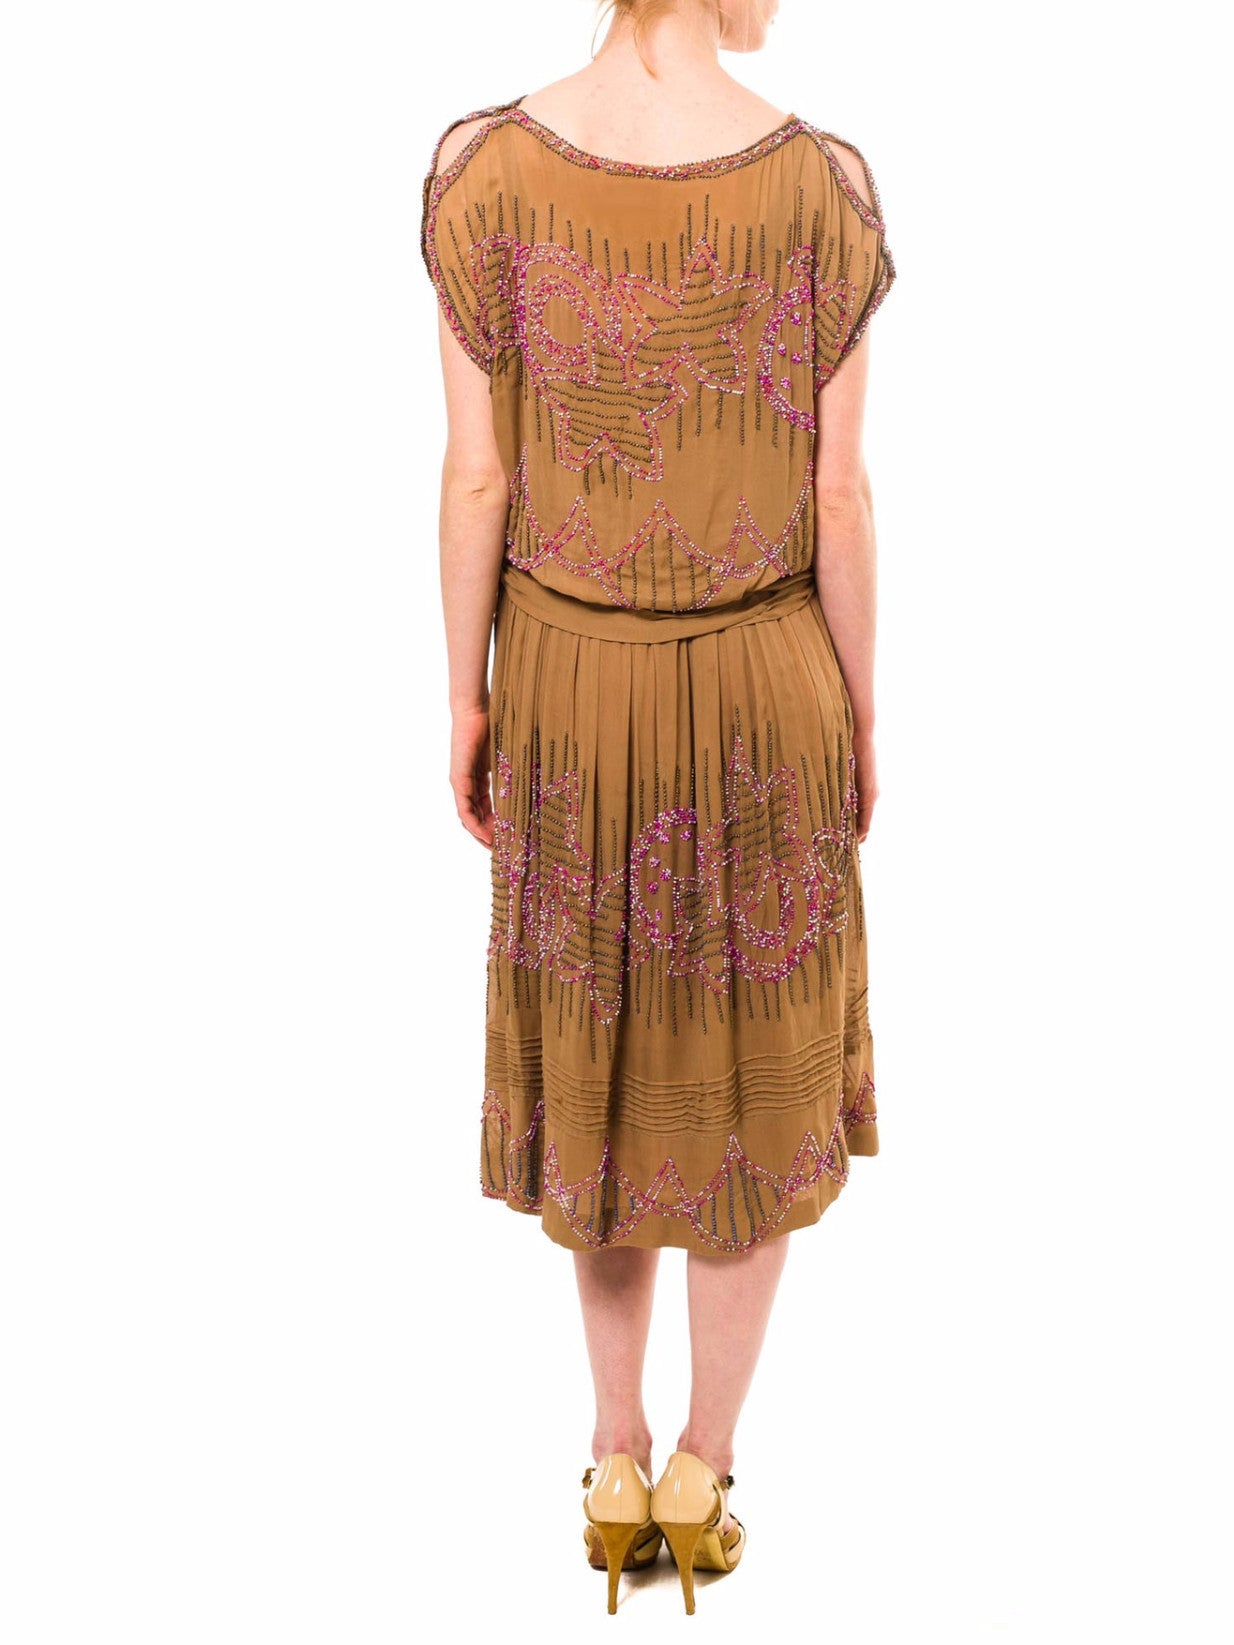 1920S Khaki Silk Cocktail Dress With Pink & Gold Beadwork